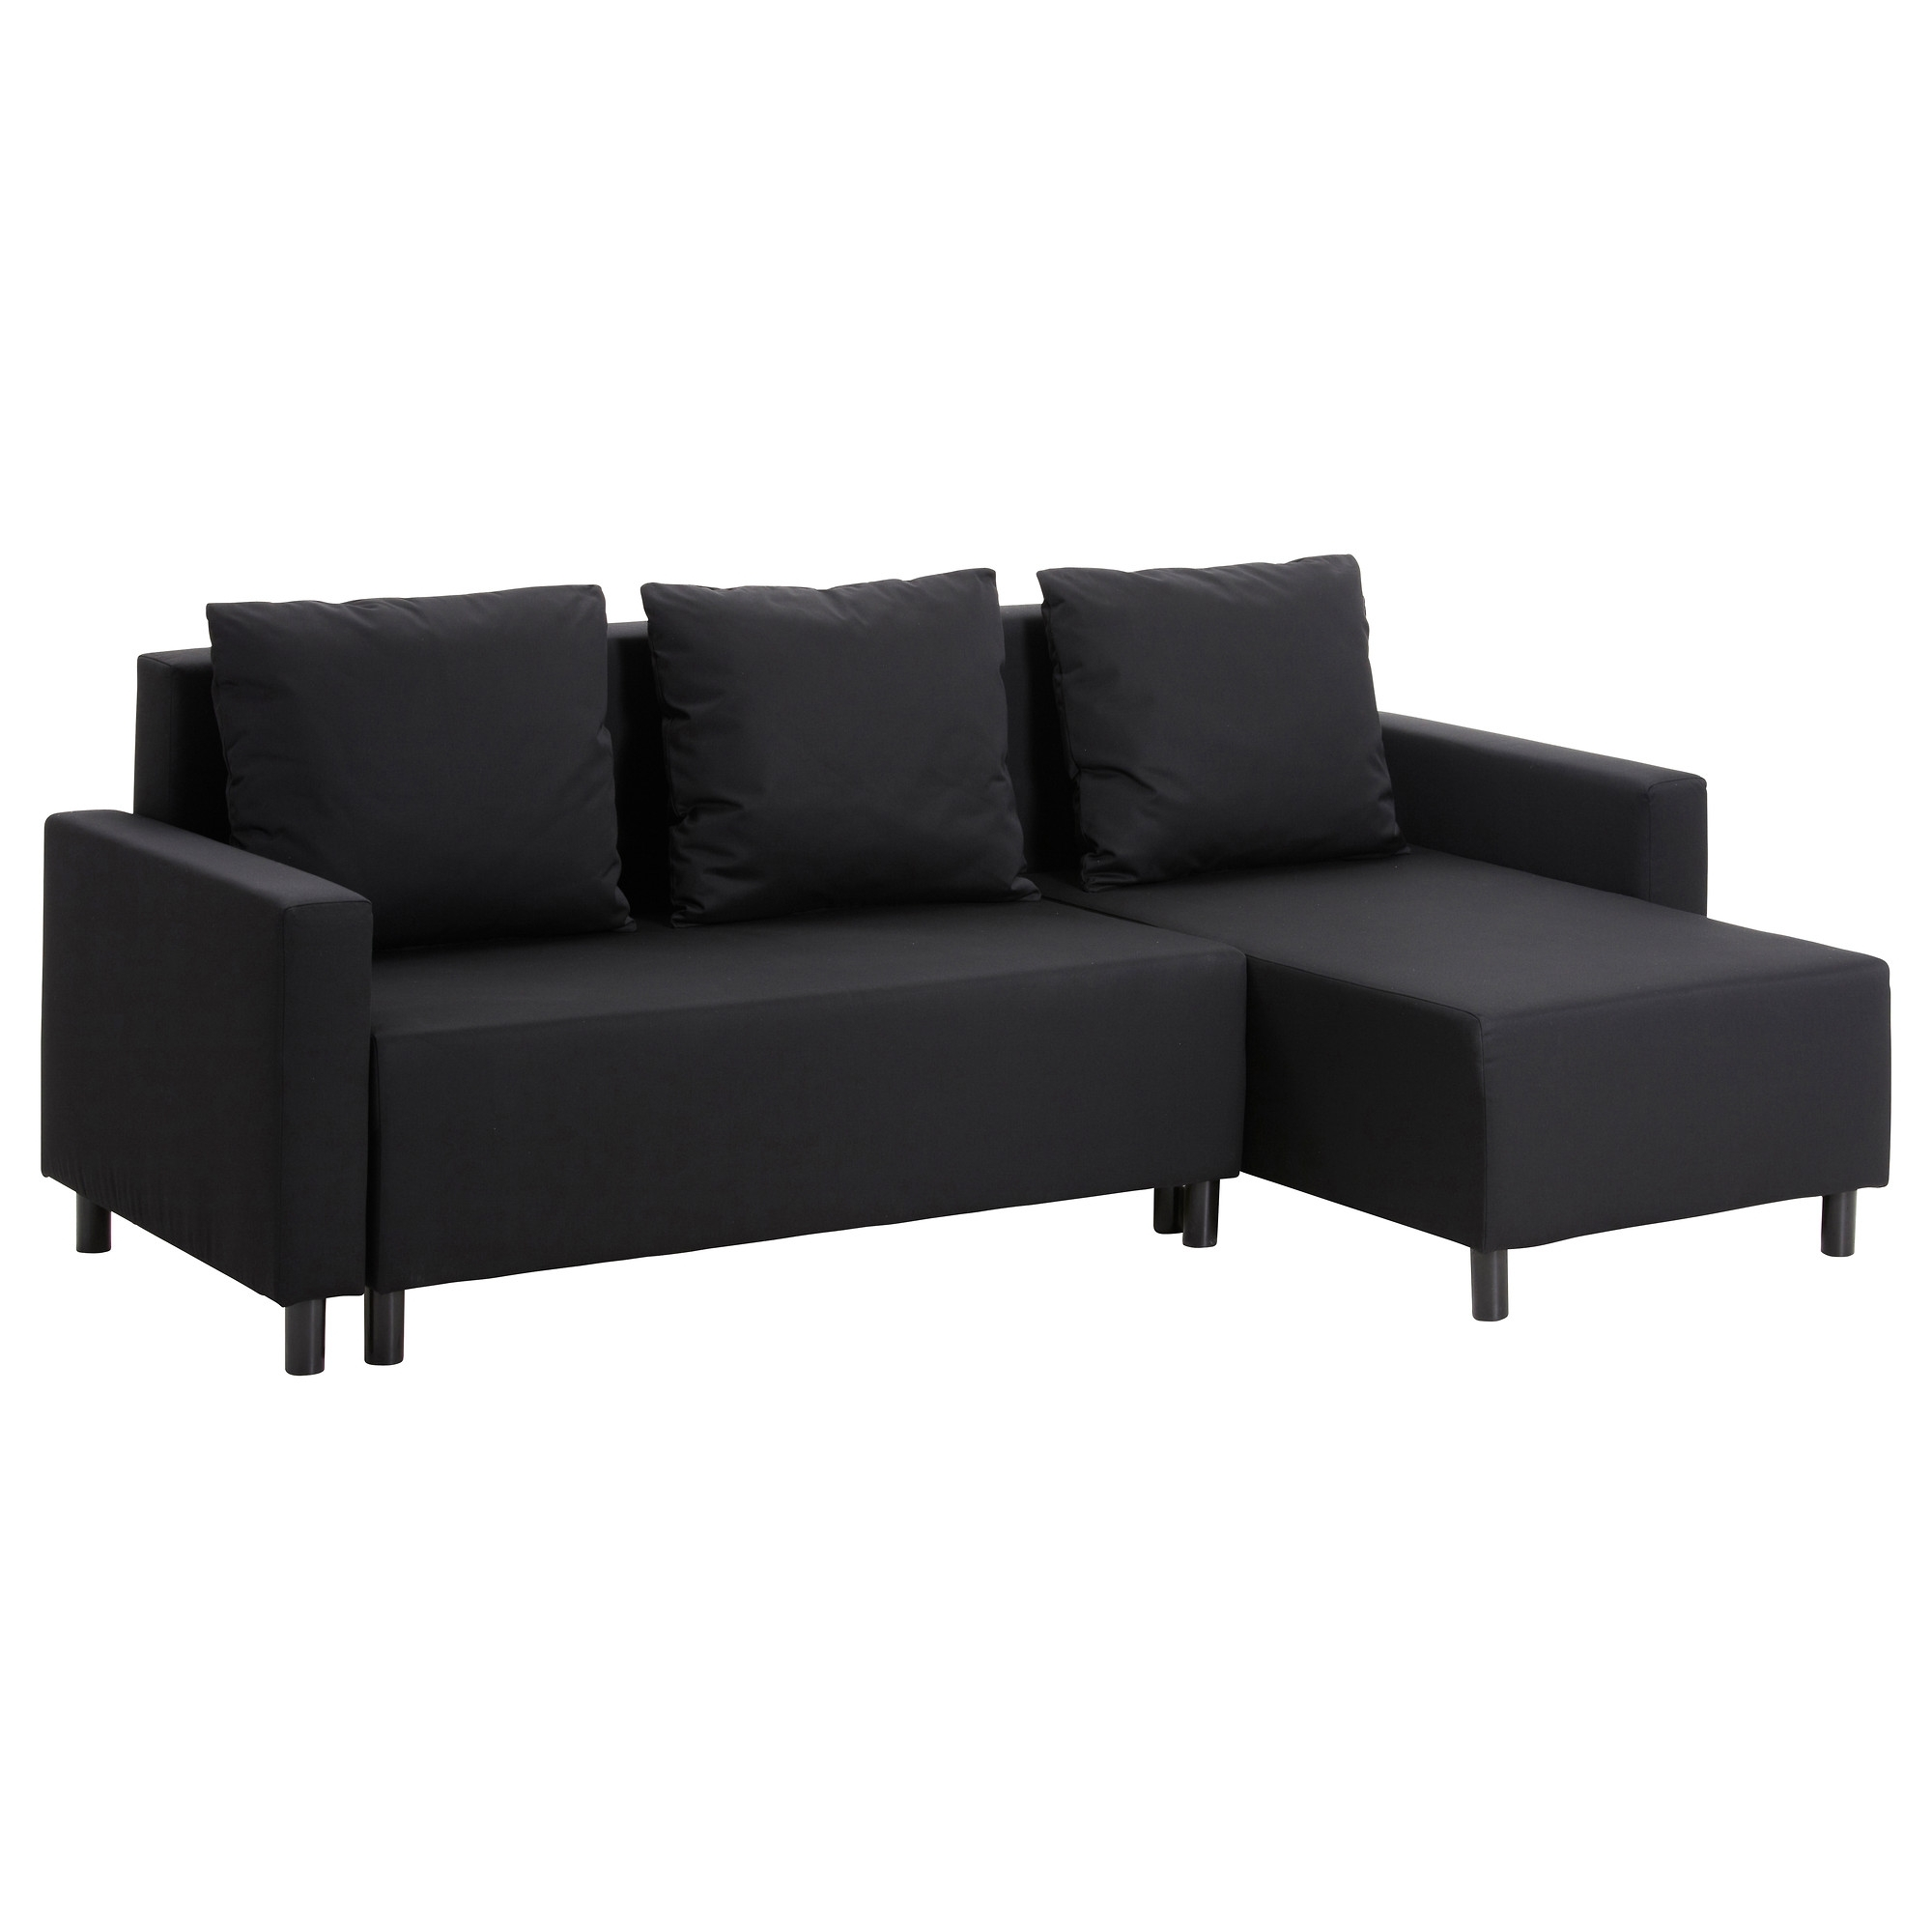 Sofa Bed Chaises Within Most Recent Lugnvik Sofa Bed With Chaise Lounge – Granån Black – Ikea (View 3 of 15)